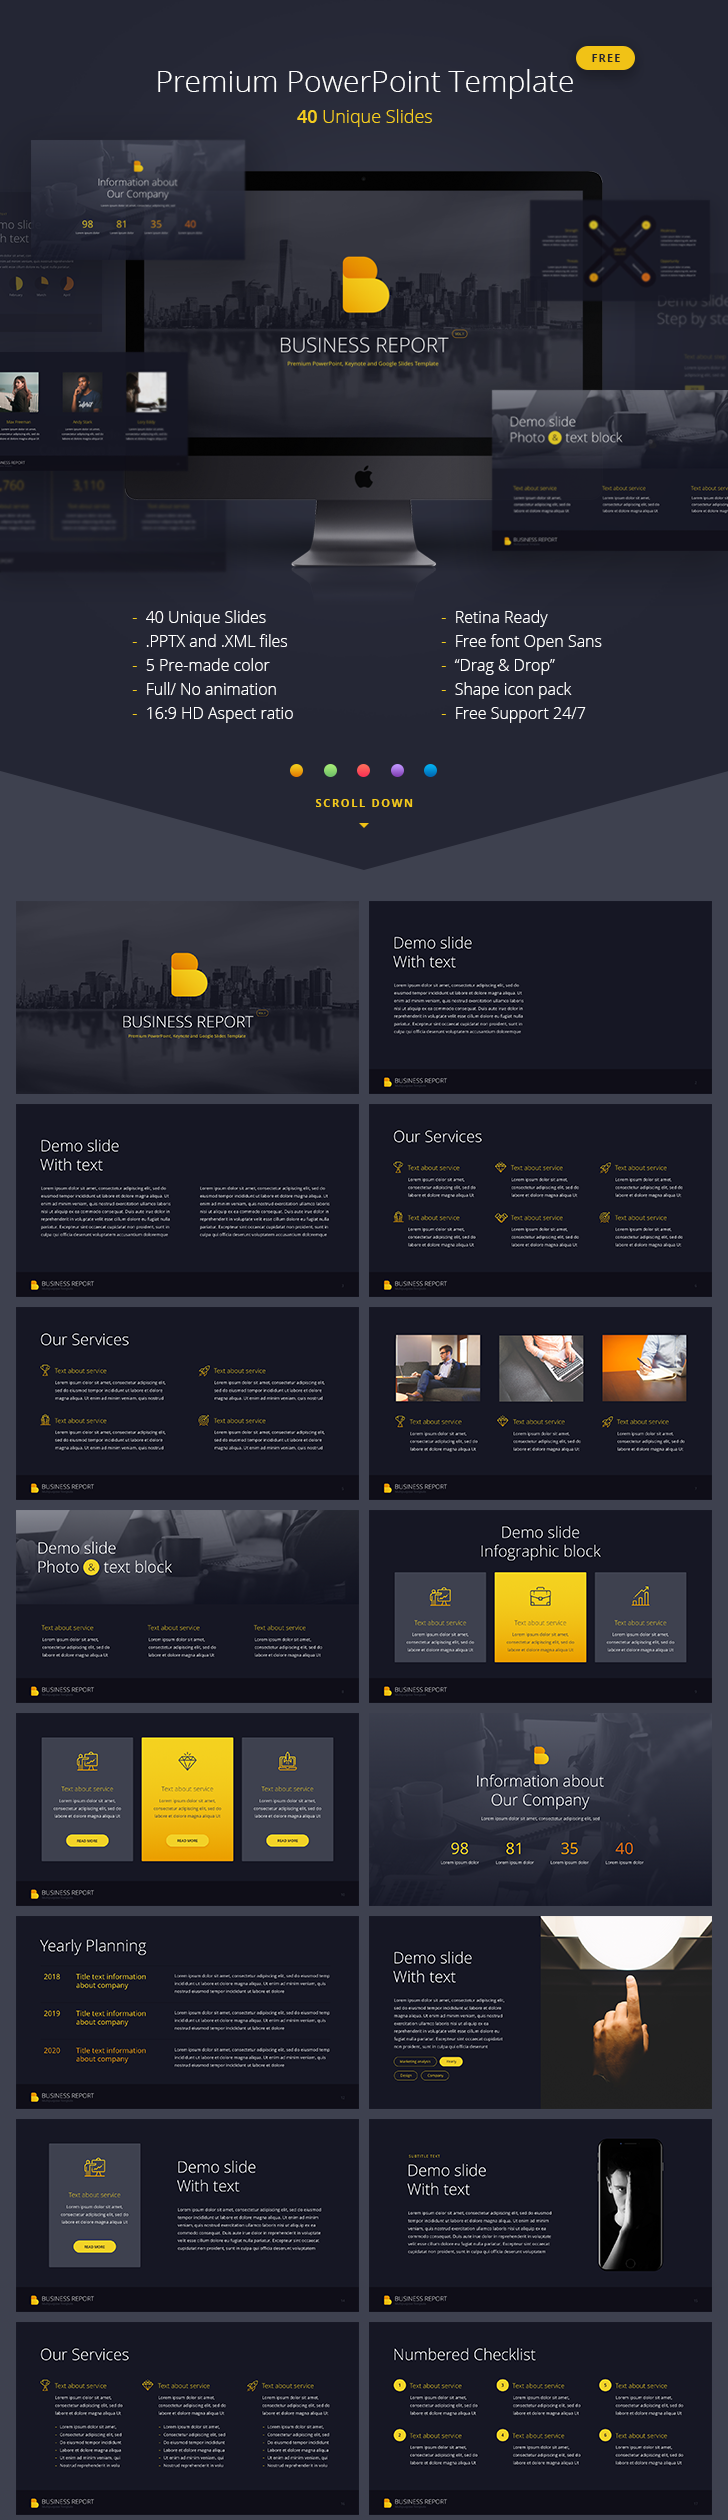 01-business-report-powerpoint-template-vol-1.png